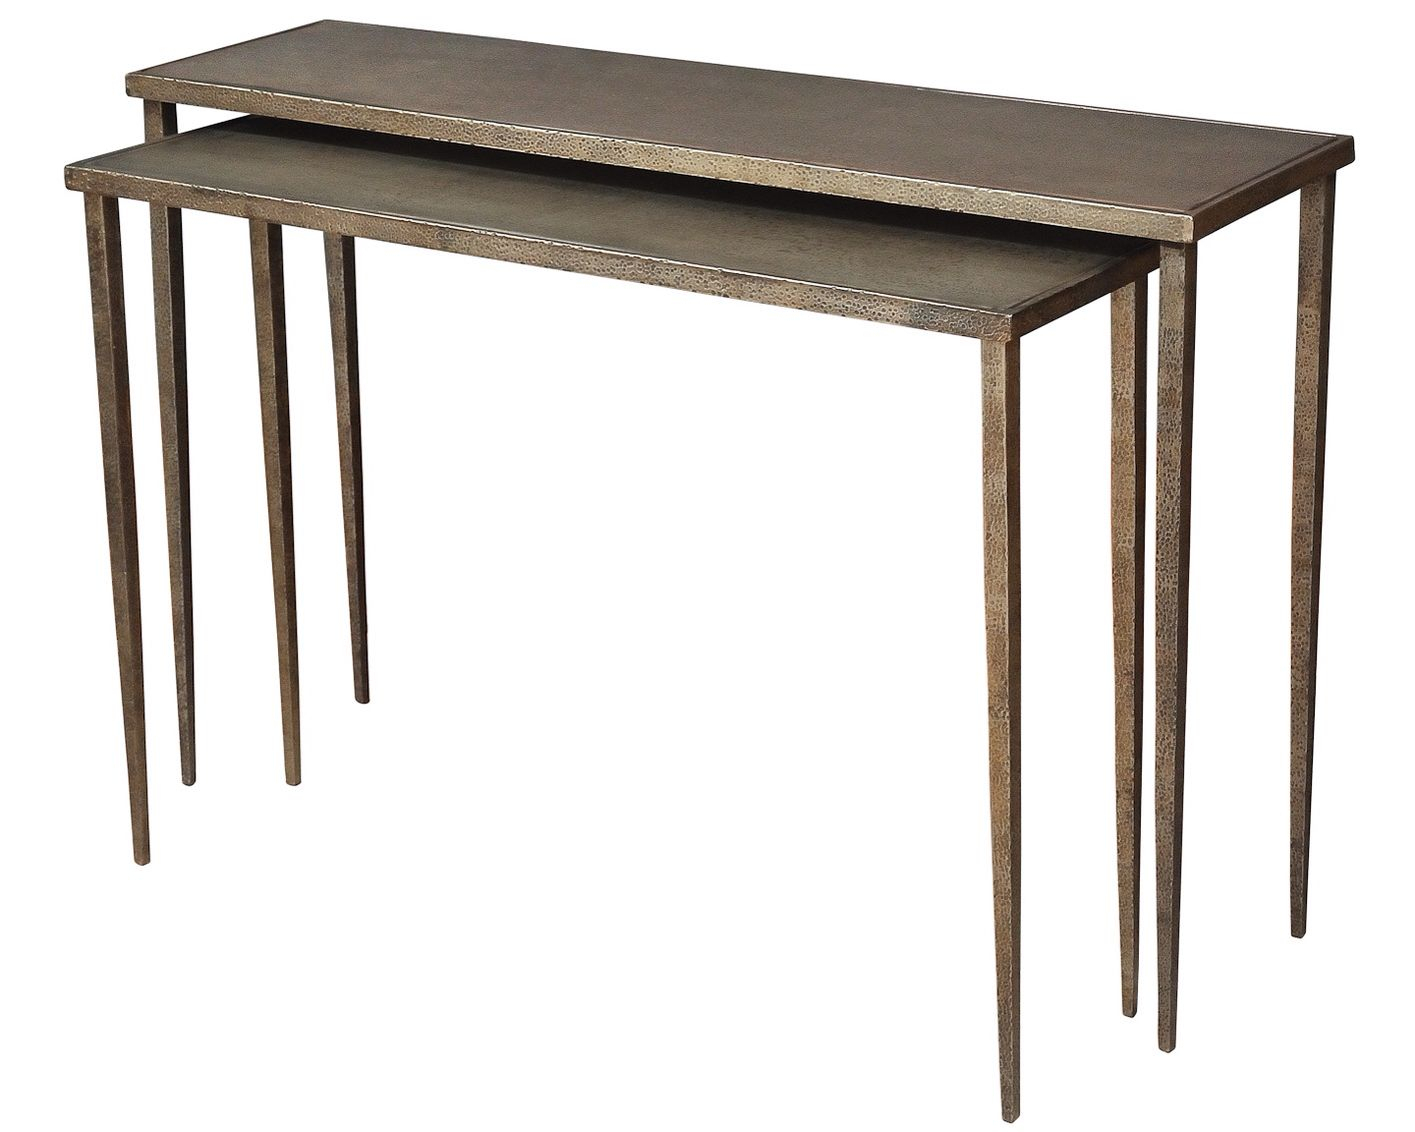 Hammered Sheet Metal Console Tables | My Designs | Pinterest Intended For Parsons Concrete Top & Brass Base 48x16 Console Tables (View 4 of 30)